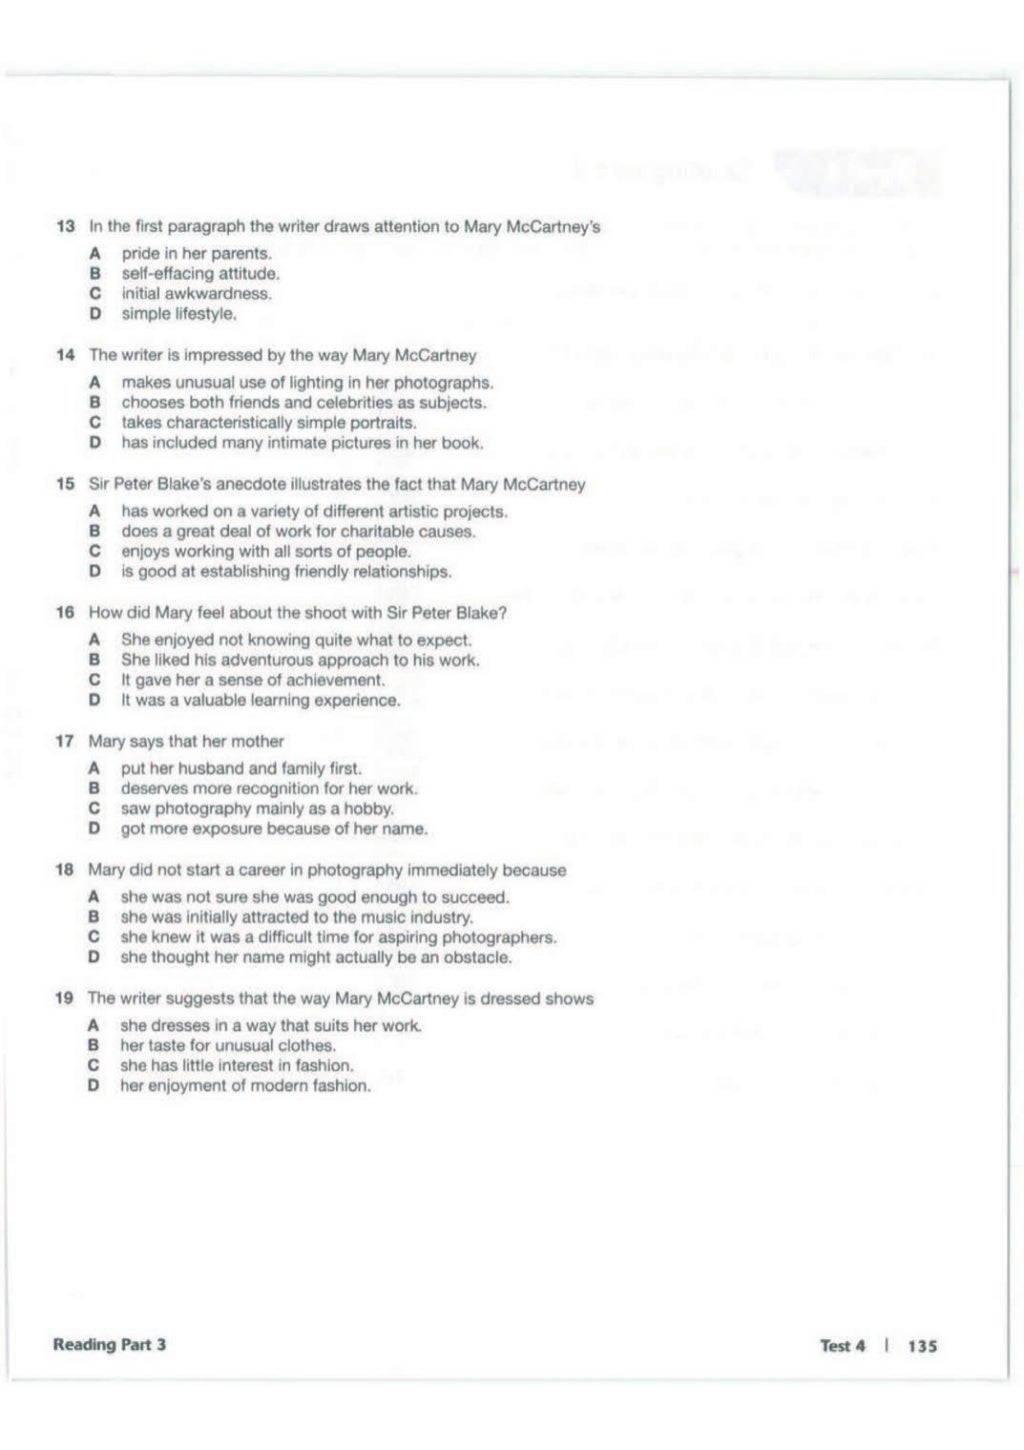 Advanced trainer 6 practice tests with answers book4joy (1) page 136